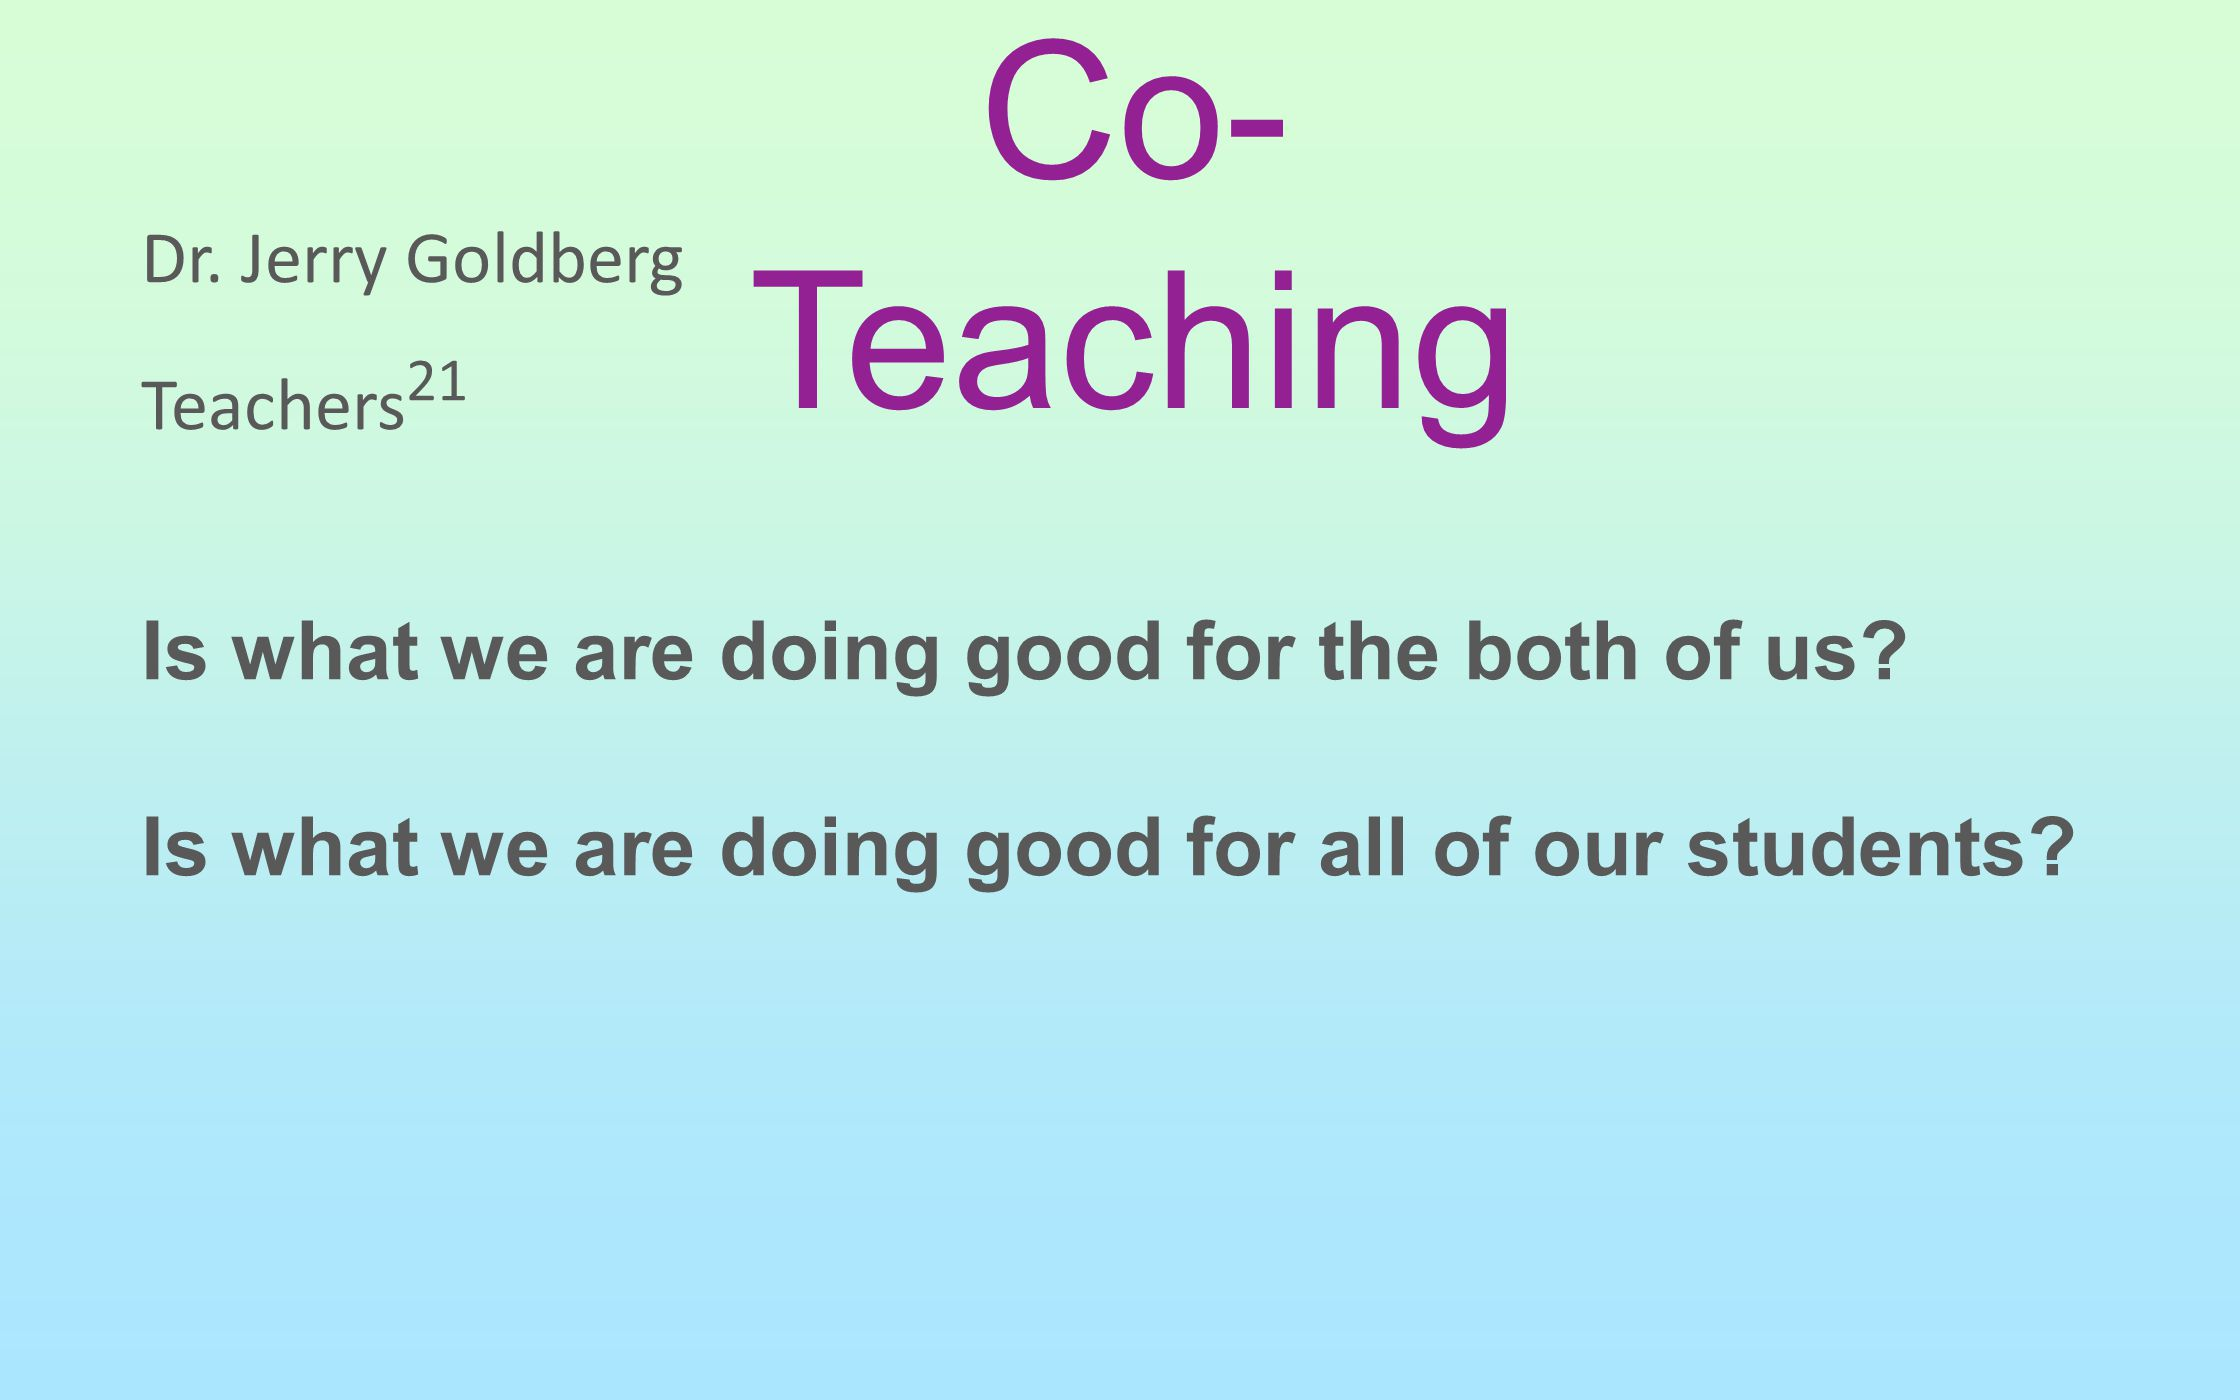 Dr. Jerry Goldberg Teachers 21 Is what we are doing good for the both of us? Is what we are doing good for all of our students? Co- Teaching